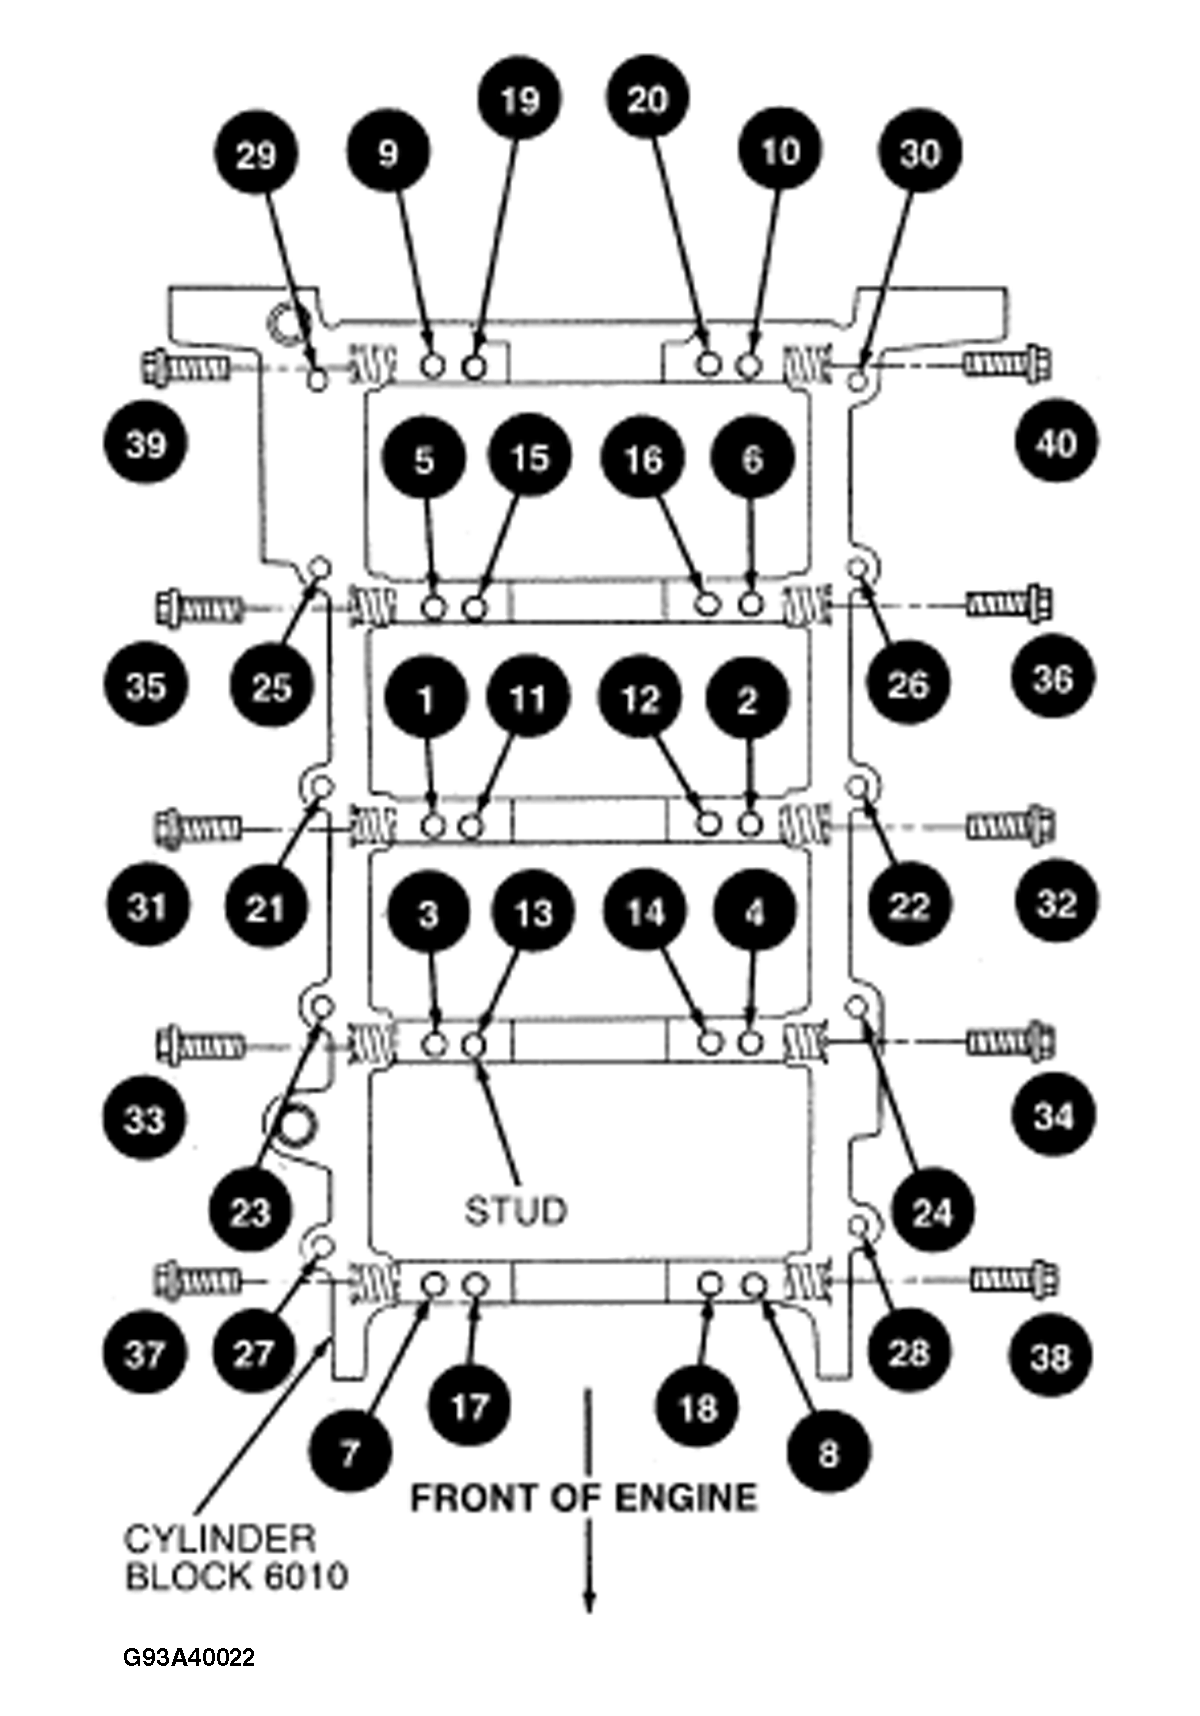 Chevrolet Silverado 1999 2006 How To Replace Oxygen O2 Sensors 392996 likewise 310832 1969 Mustang Mach 1 So California Original No Reserve further Engine Casting Number Lookup likewise Hurst Shifter Parts Diagram furthermore Transapps 65 72cars. on ford mustang vin number